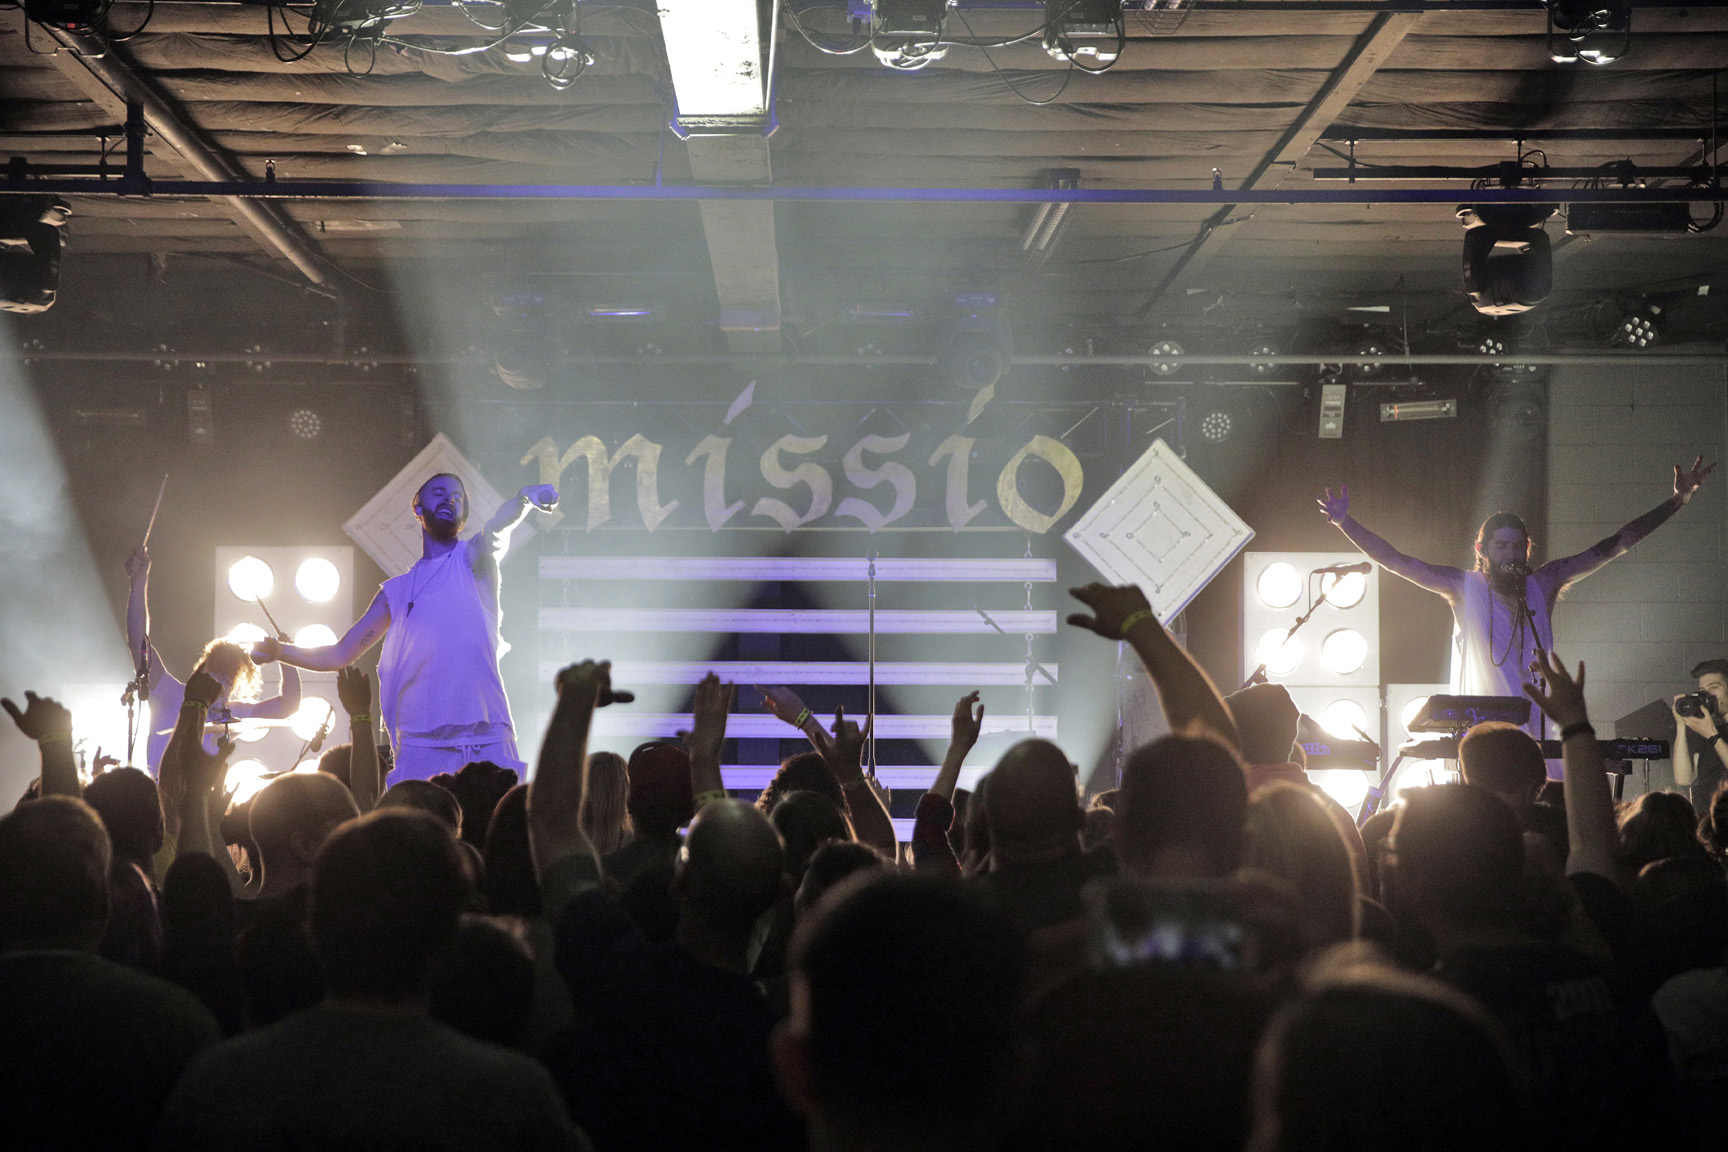 Missio, The Ready Room, STL